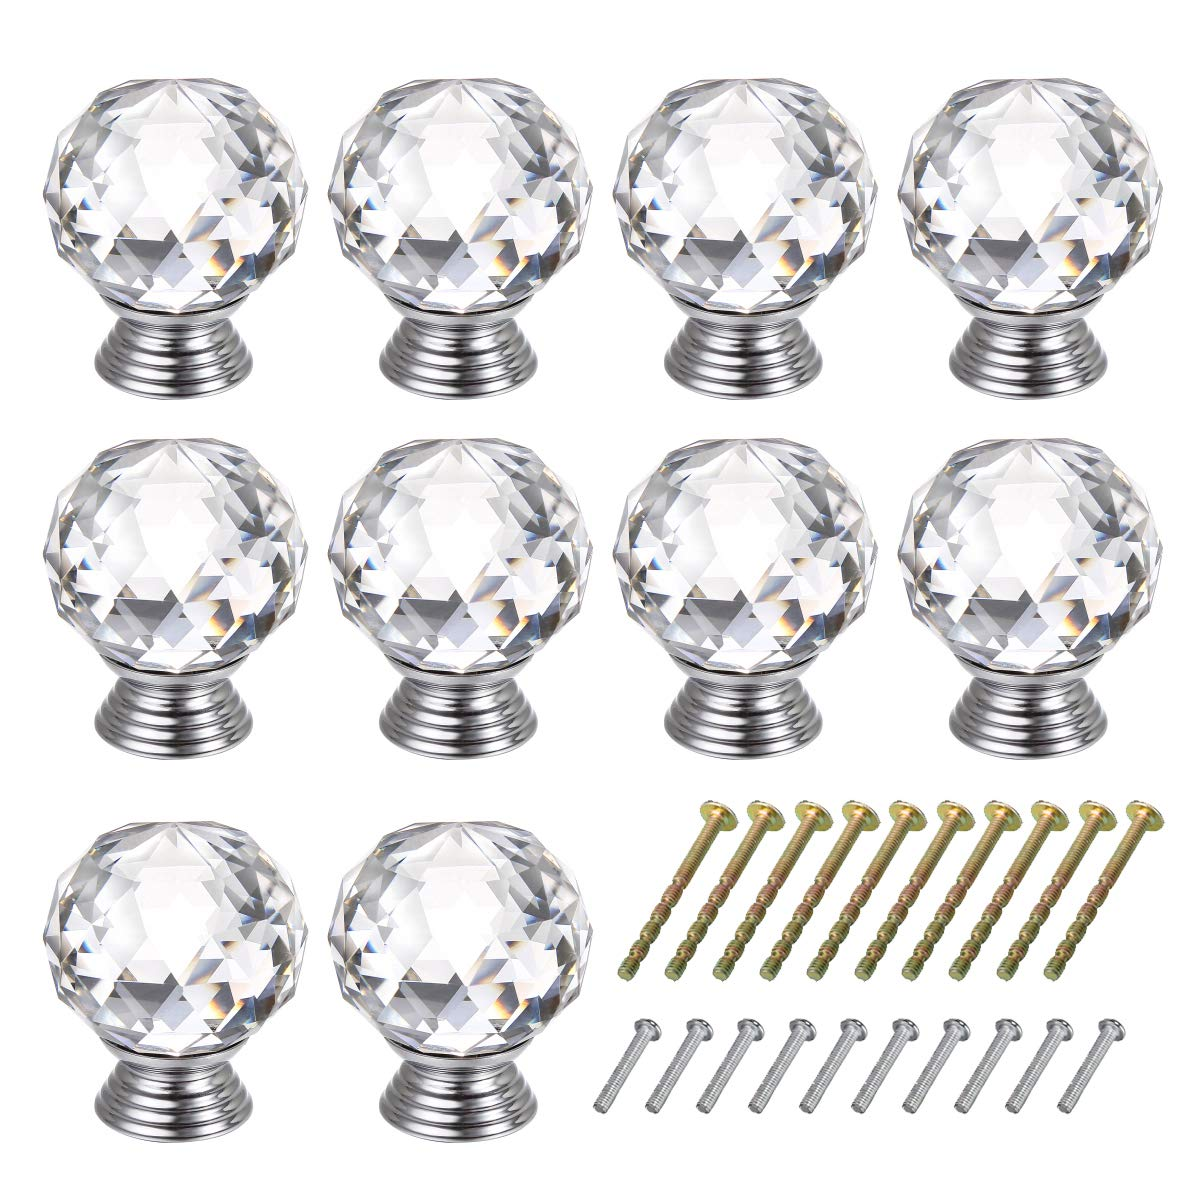 TOOGOO R 10 Pcs 20mm Glass Cabinet Knobs Drawer Pull Furniture Handle